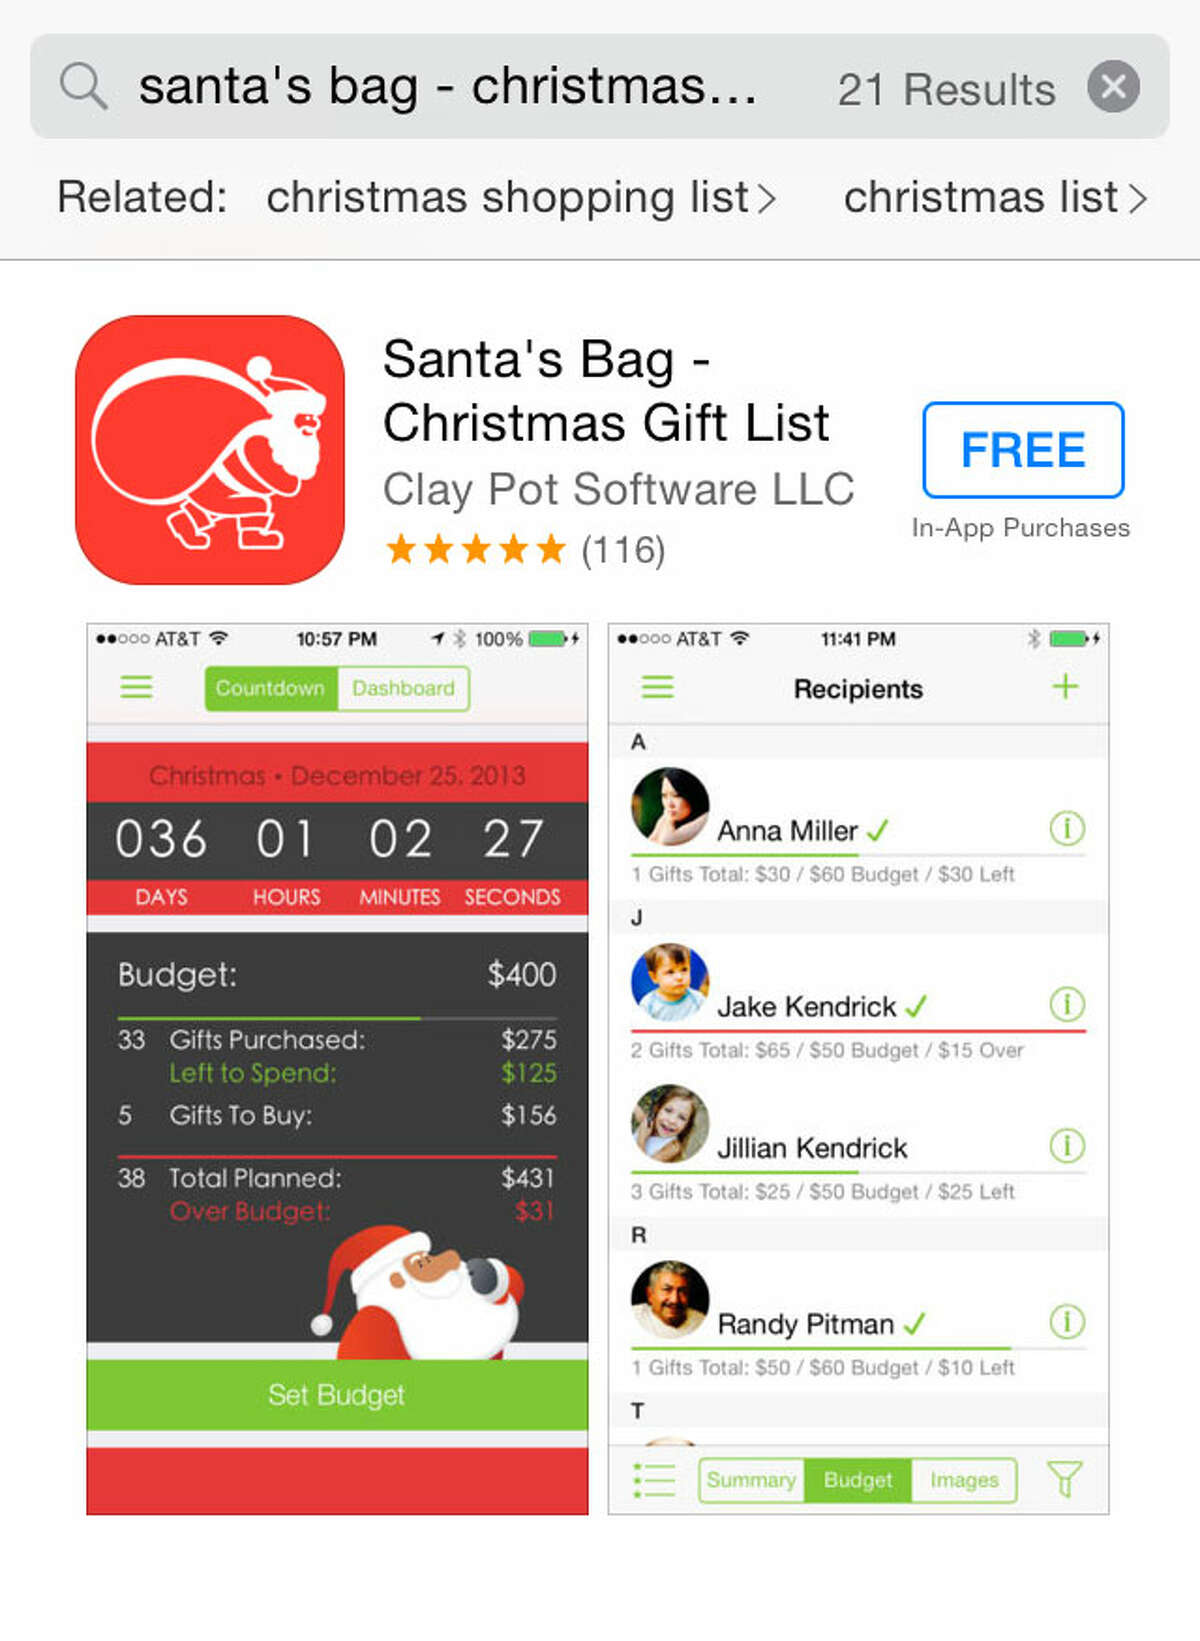 For help managing your shopping needs, download a free gift list app like Santa's Bag for iPhone to keep track of ideas and purchases. These apps also contain a budget function, which will let you know when you meet or exceed your budget for gift recipients.